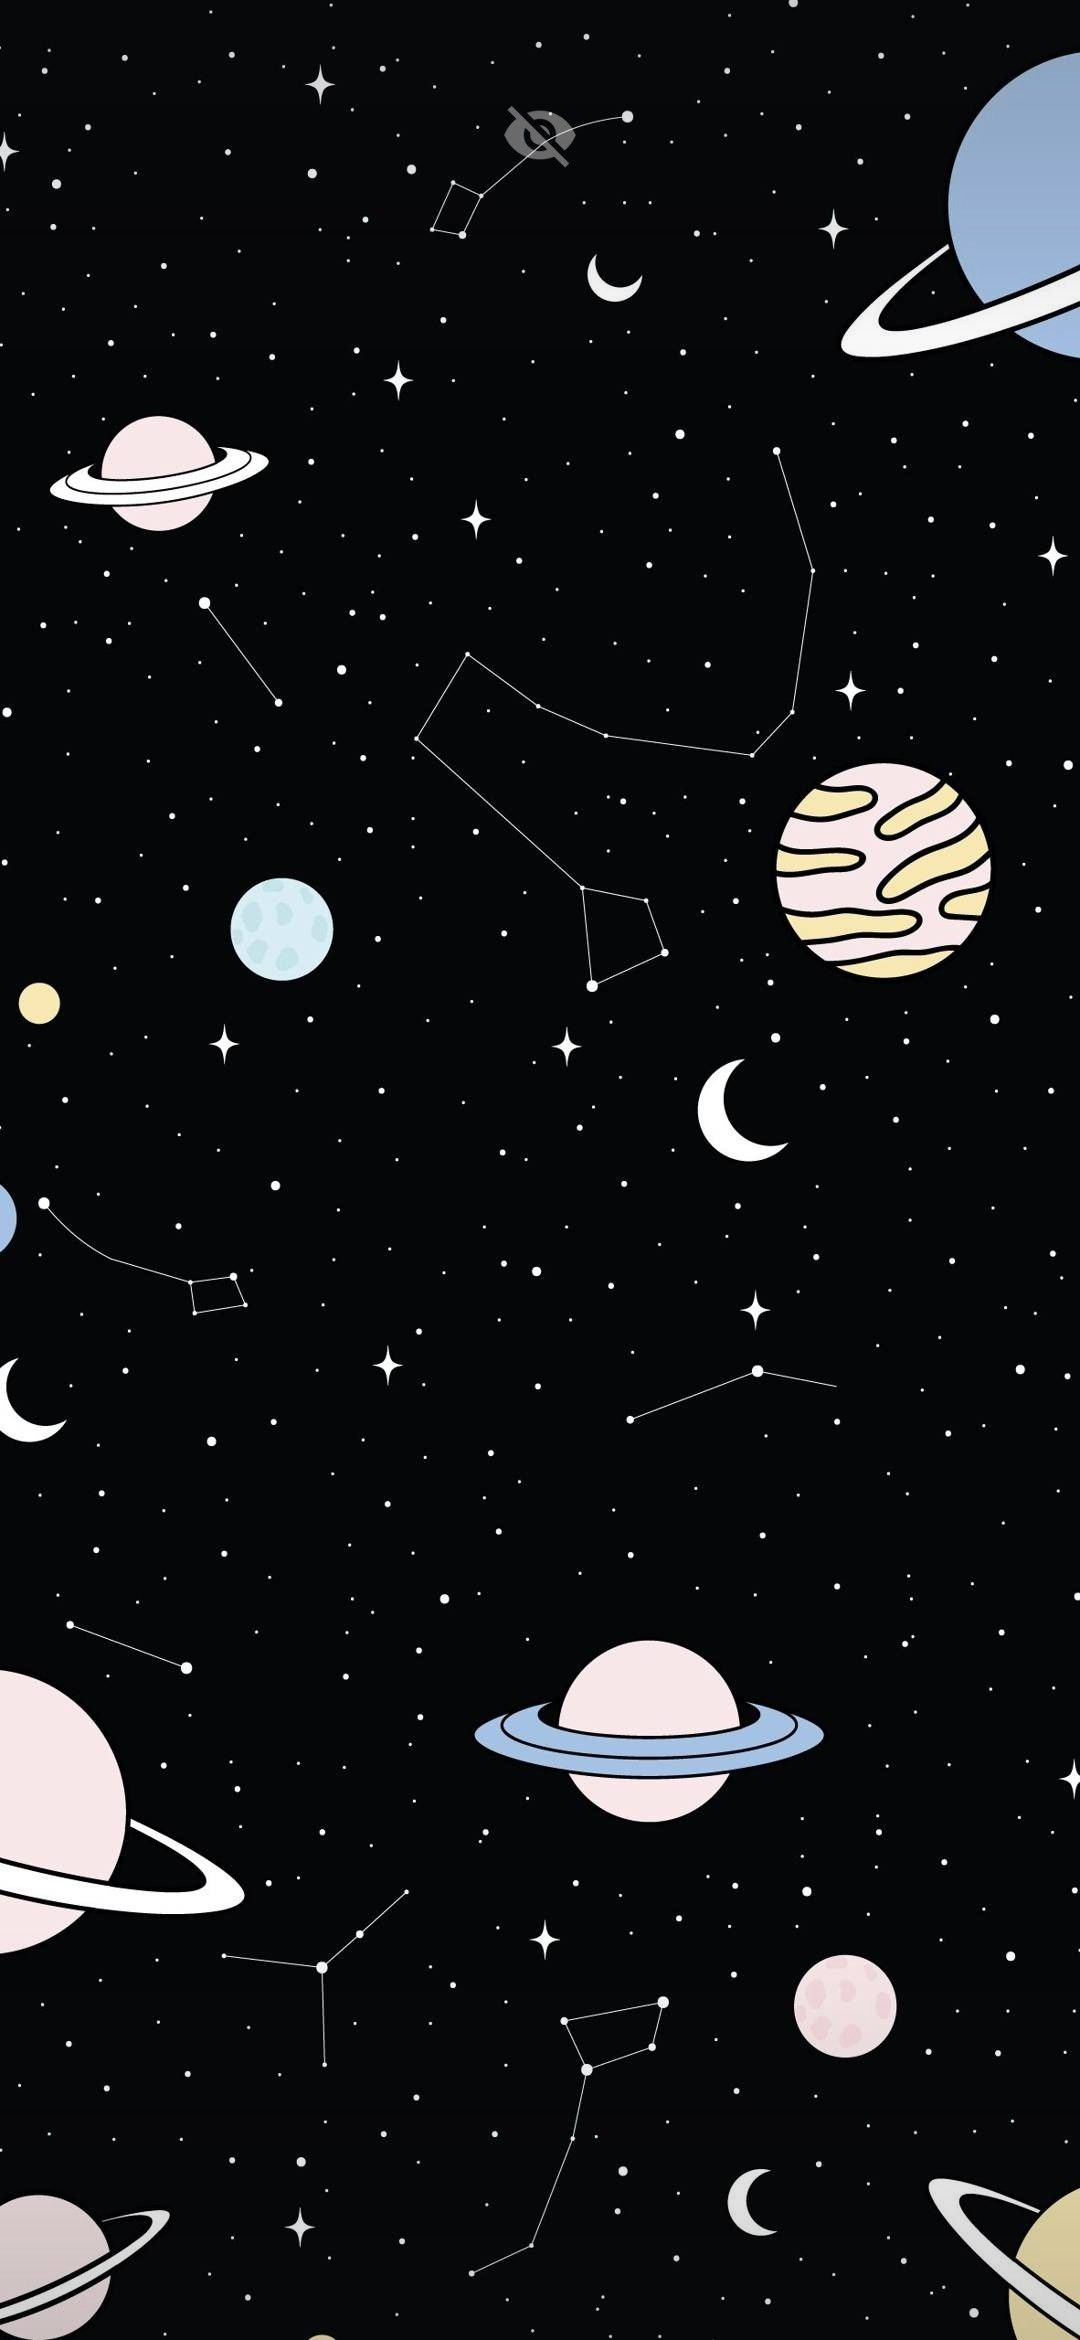 Idea By Quantumwolves On Arts Cute Wallpaper Backgrounds Dark Wallpaper Space Phone Wallpaper